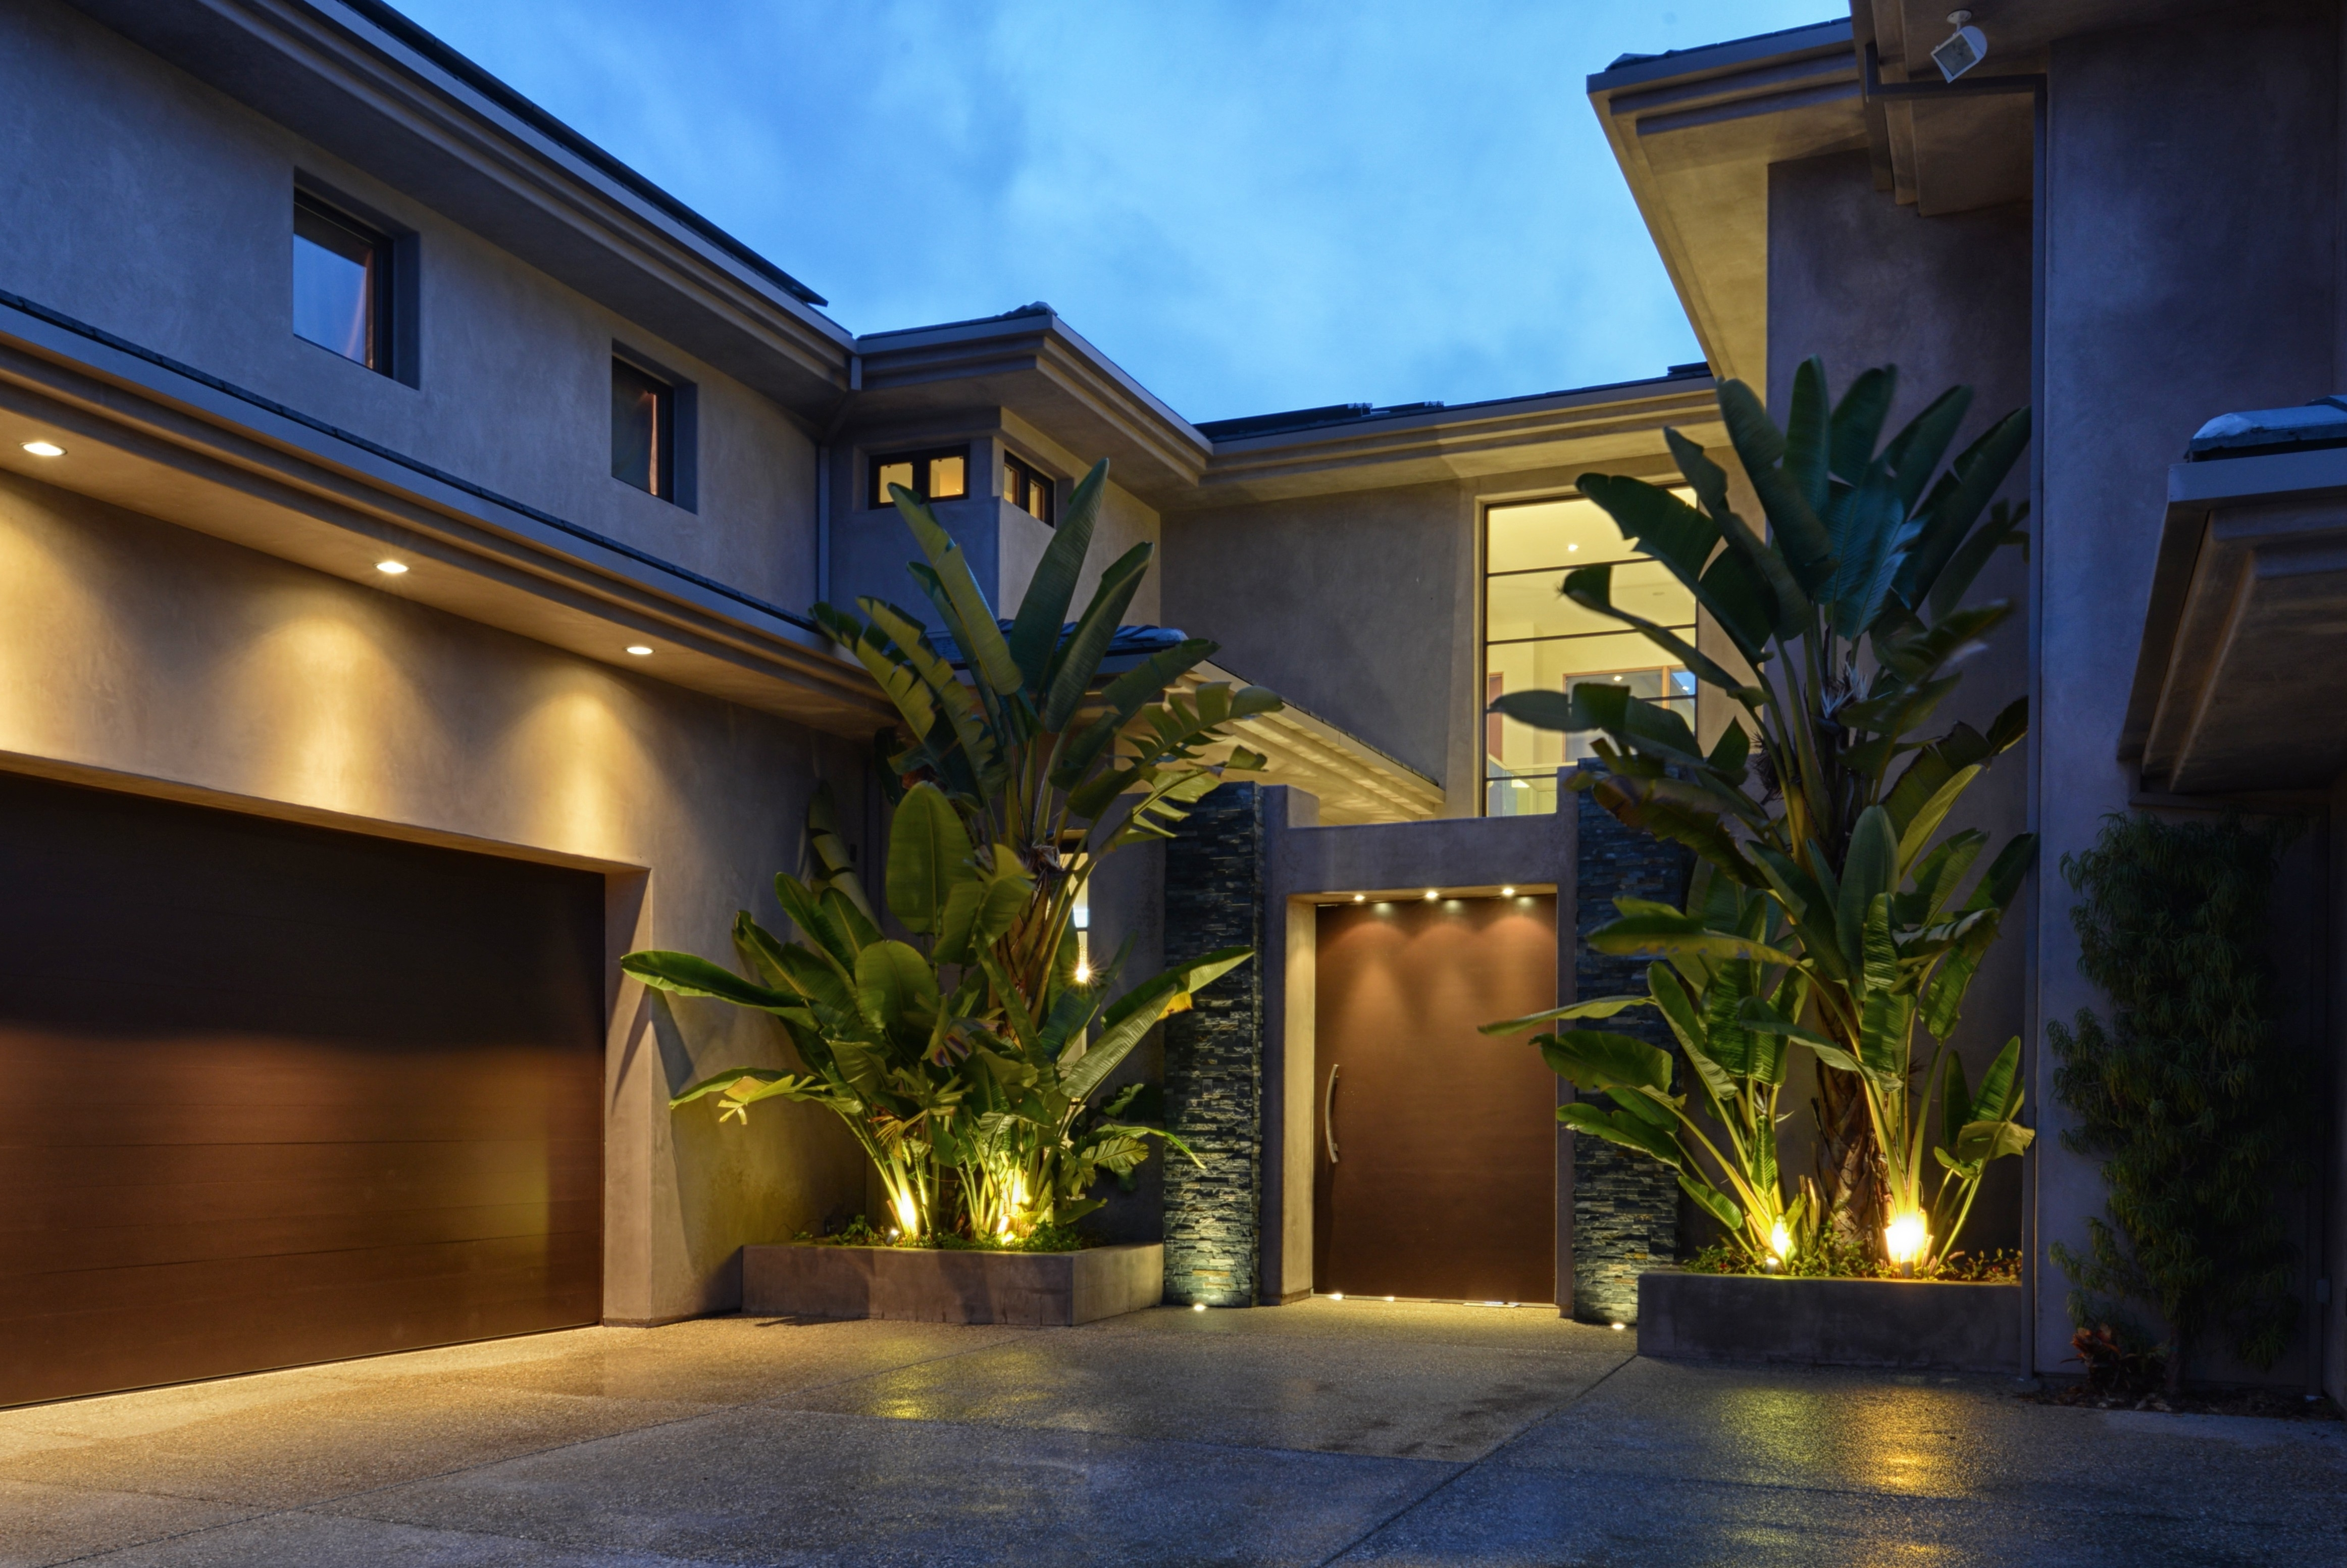 Outdoor Garage Lanterns Throughout Recent Outdoor Home Lighting Fixtures Patio Amazing Paper Lanterns For (View 12 of 20)